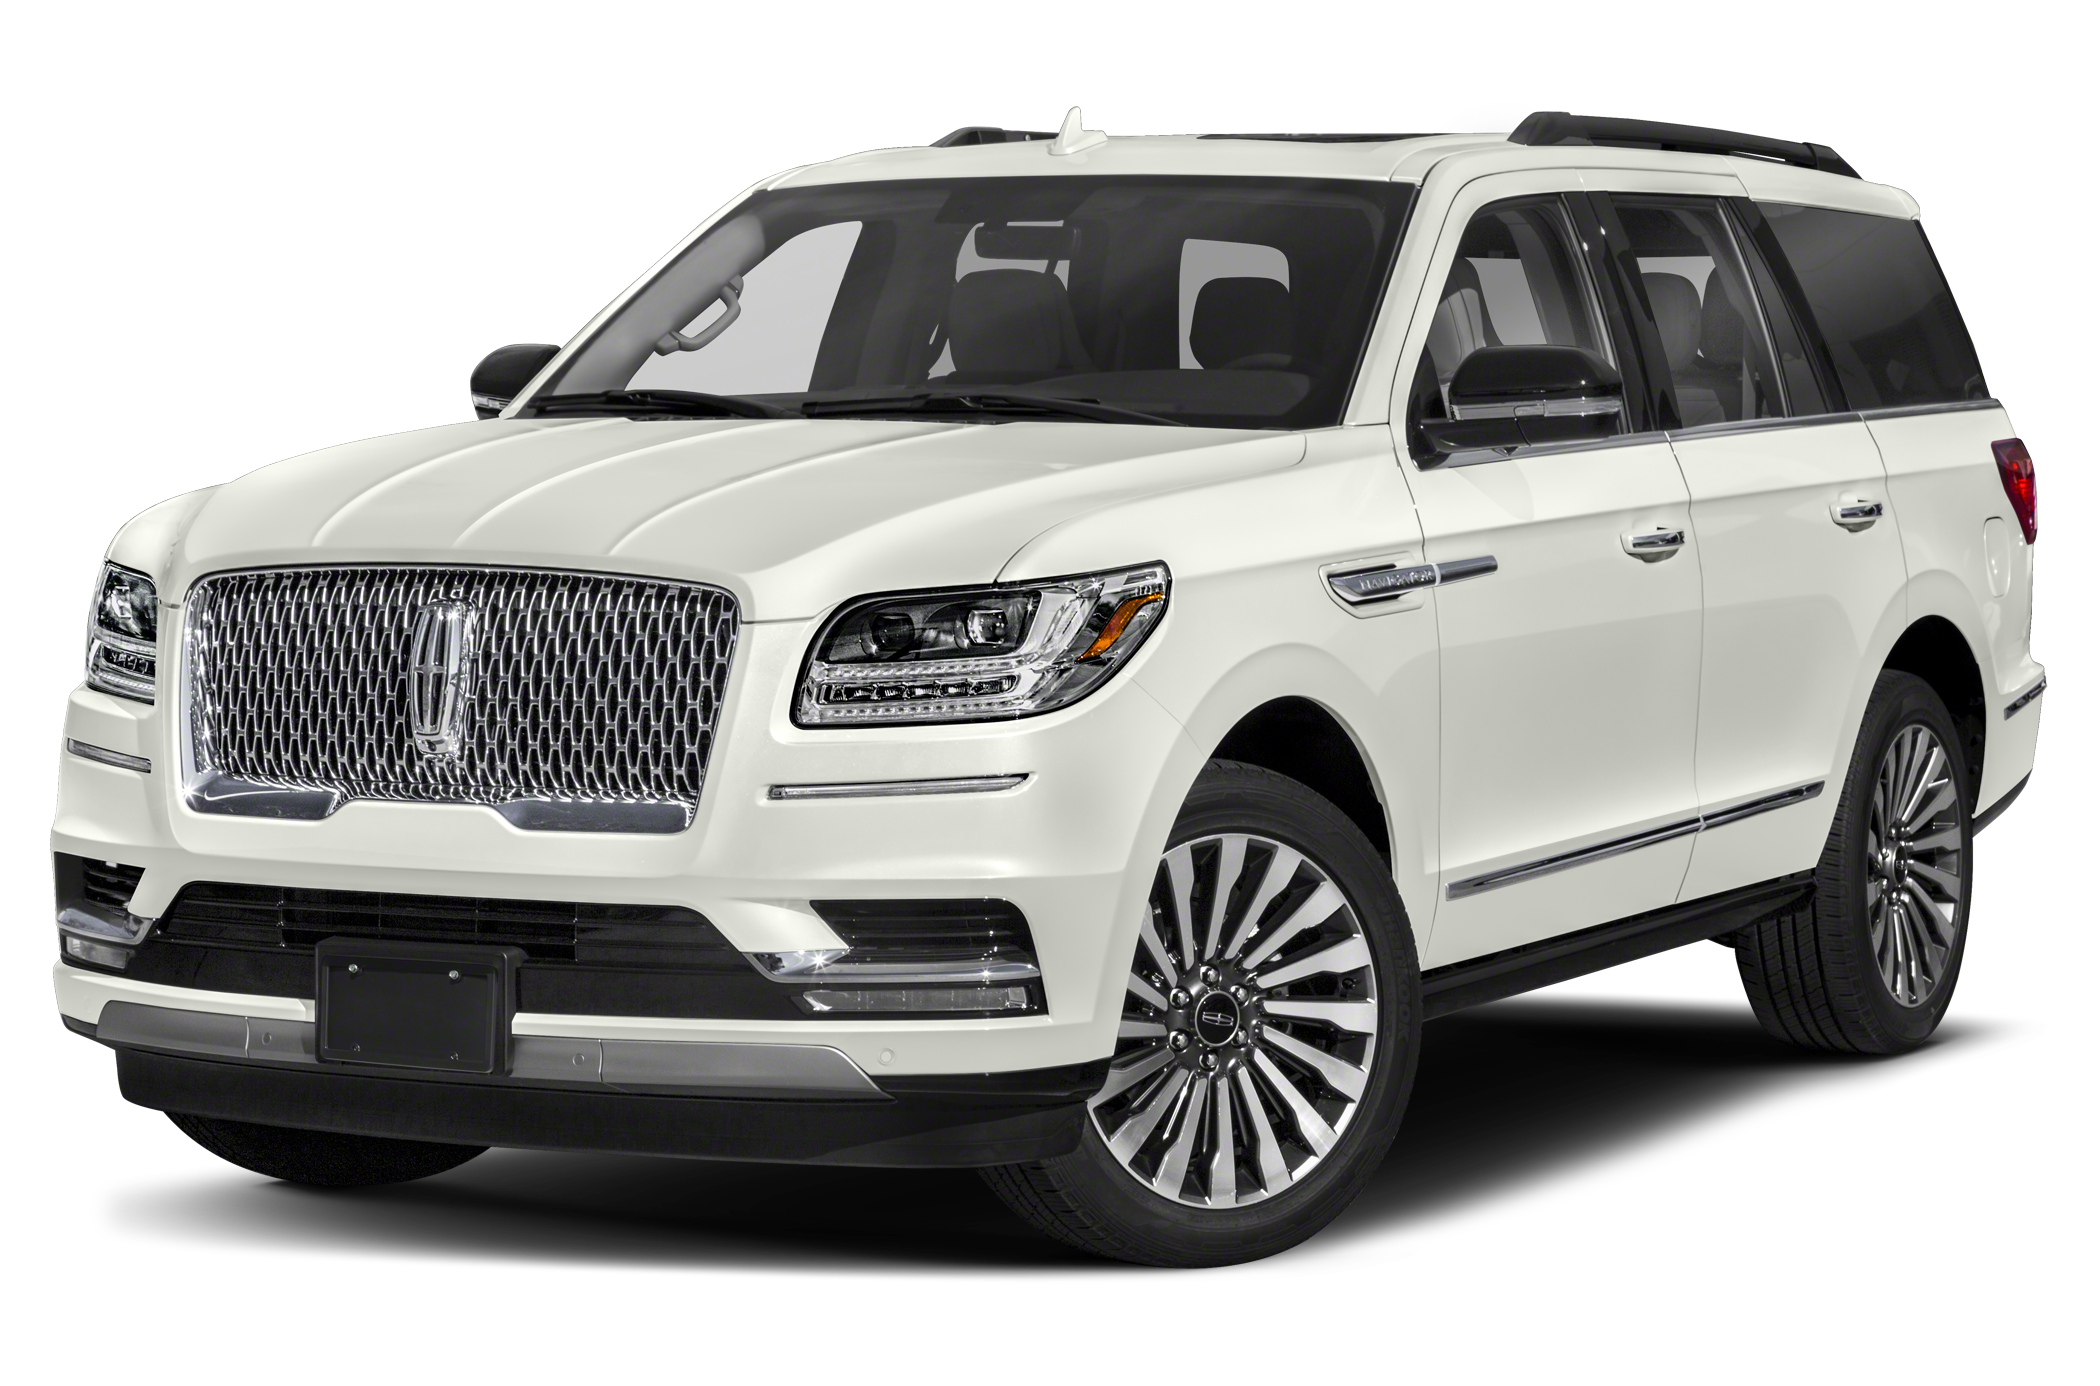 pare Lincoln Navigator to Ford Expedition